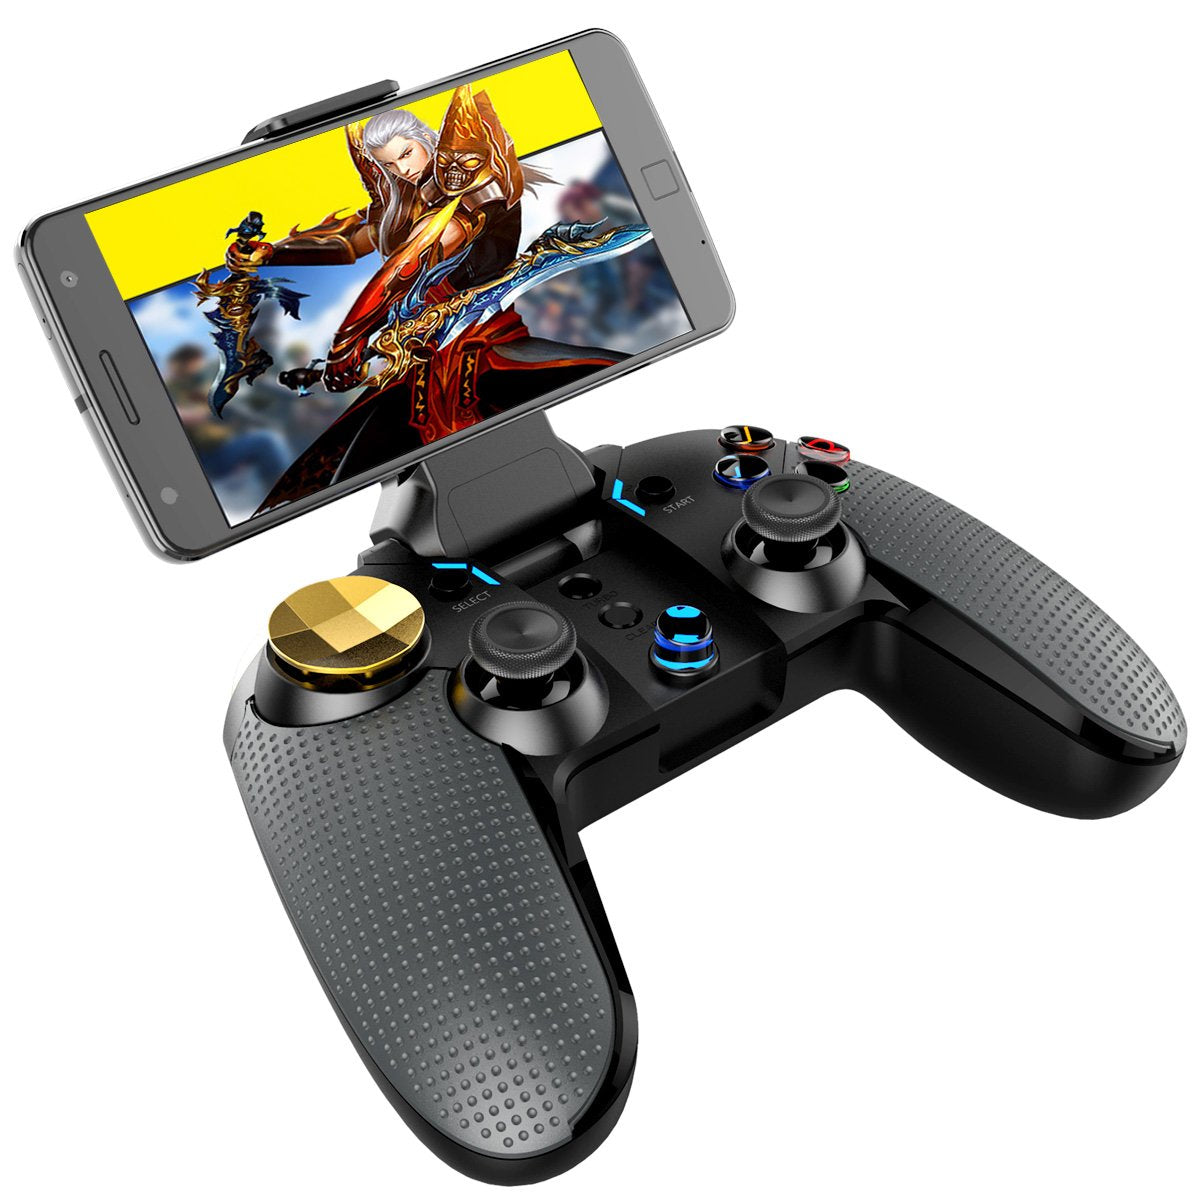 IPEGA Wireless Mobile Game Controller - Compatible with iOS/iPhone/iPad, Android Phones/Tablets, Windows 7/8/10 PC, Built-in Vibration Feedback and Mobile Phone Holder (Black)